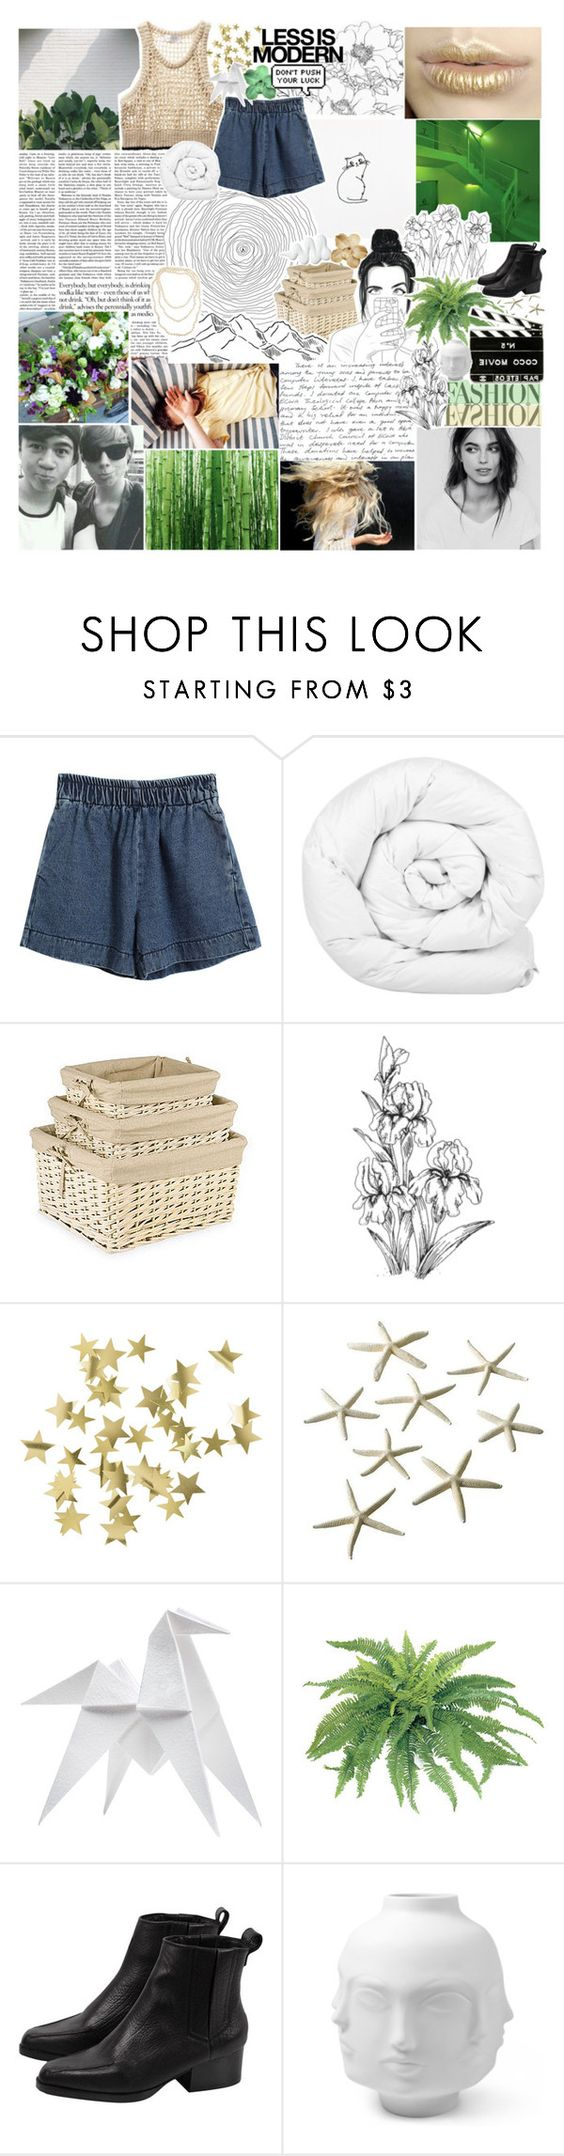 """☾ i can finally see the truth"" by thundxrstorms ❤ liked on Polyvore featuring A.L.C., Chicnova Fashion, Brinkhaus, Zara, H&M, Hermès, Chanel, Jonathan Adler, Kara and Serfontaine"